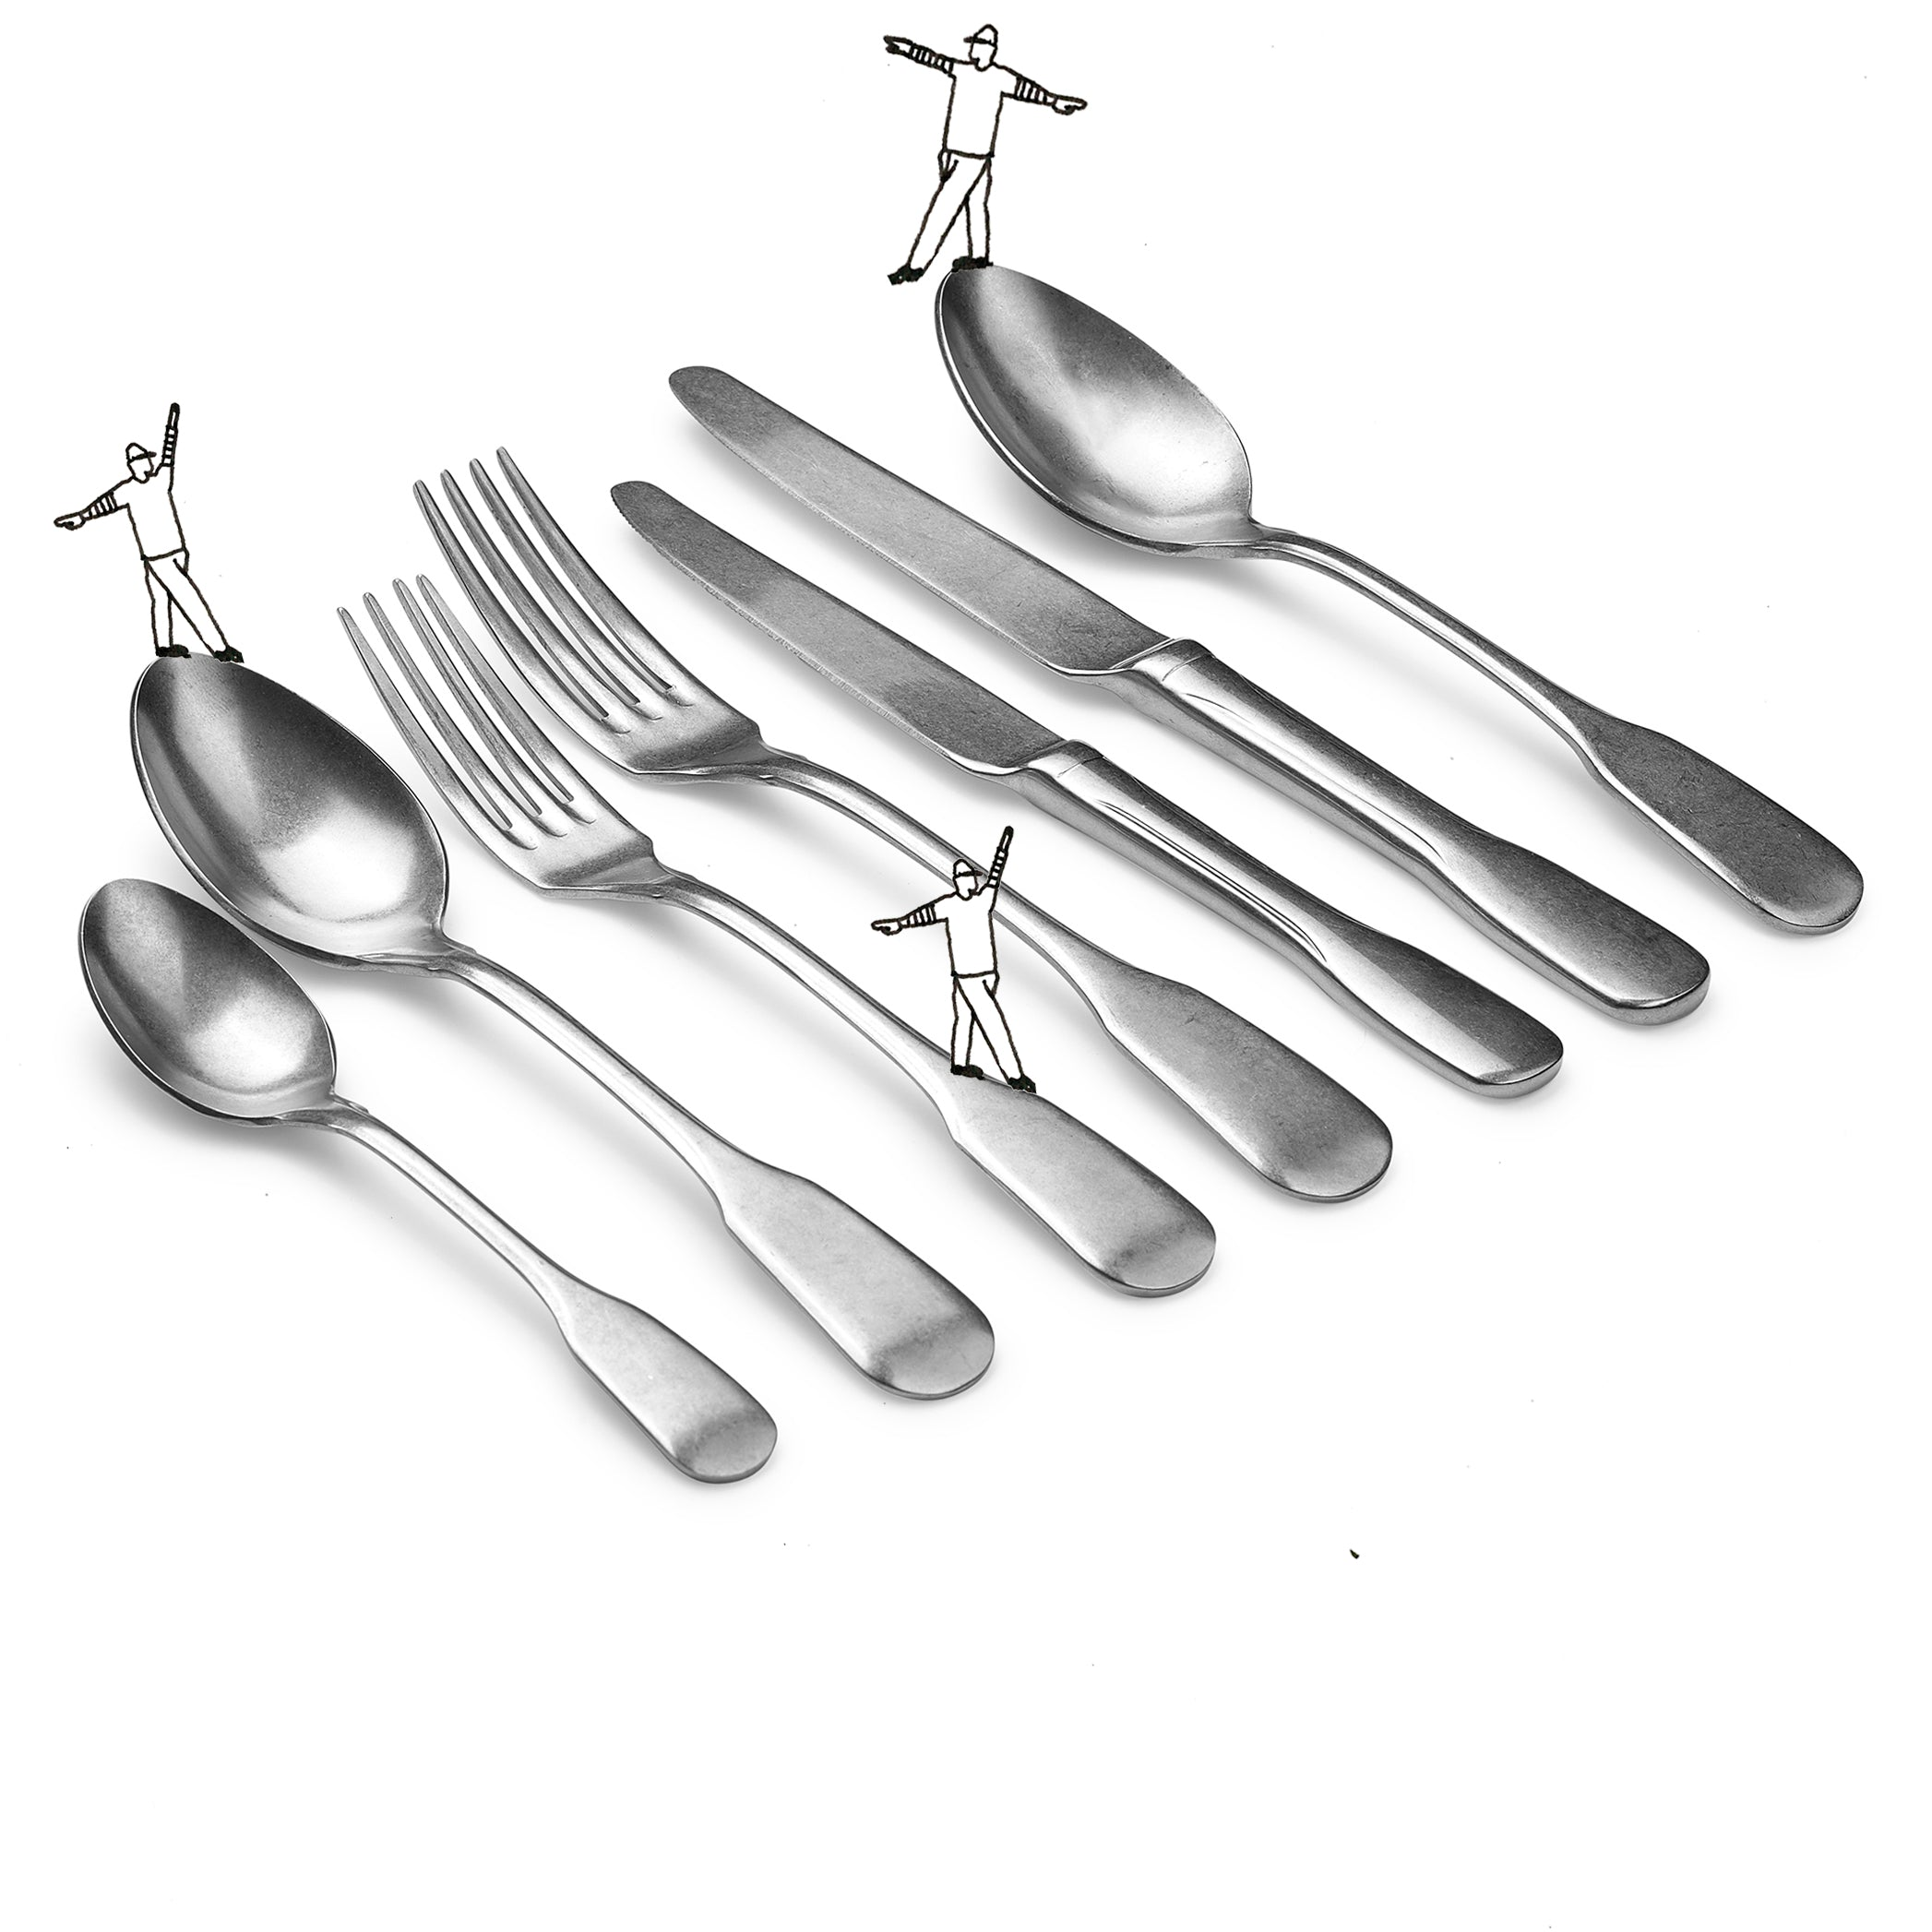 S&B 7 Piece Cutlery Set in Stainless Steel